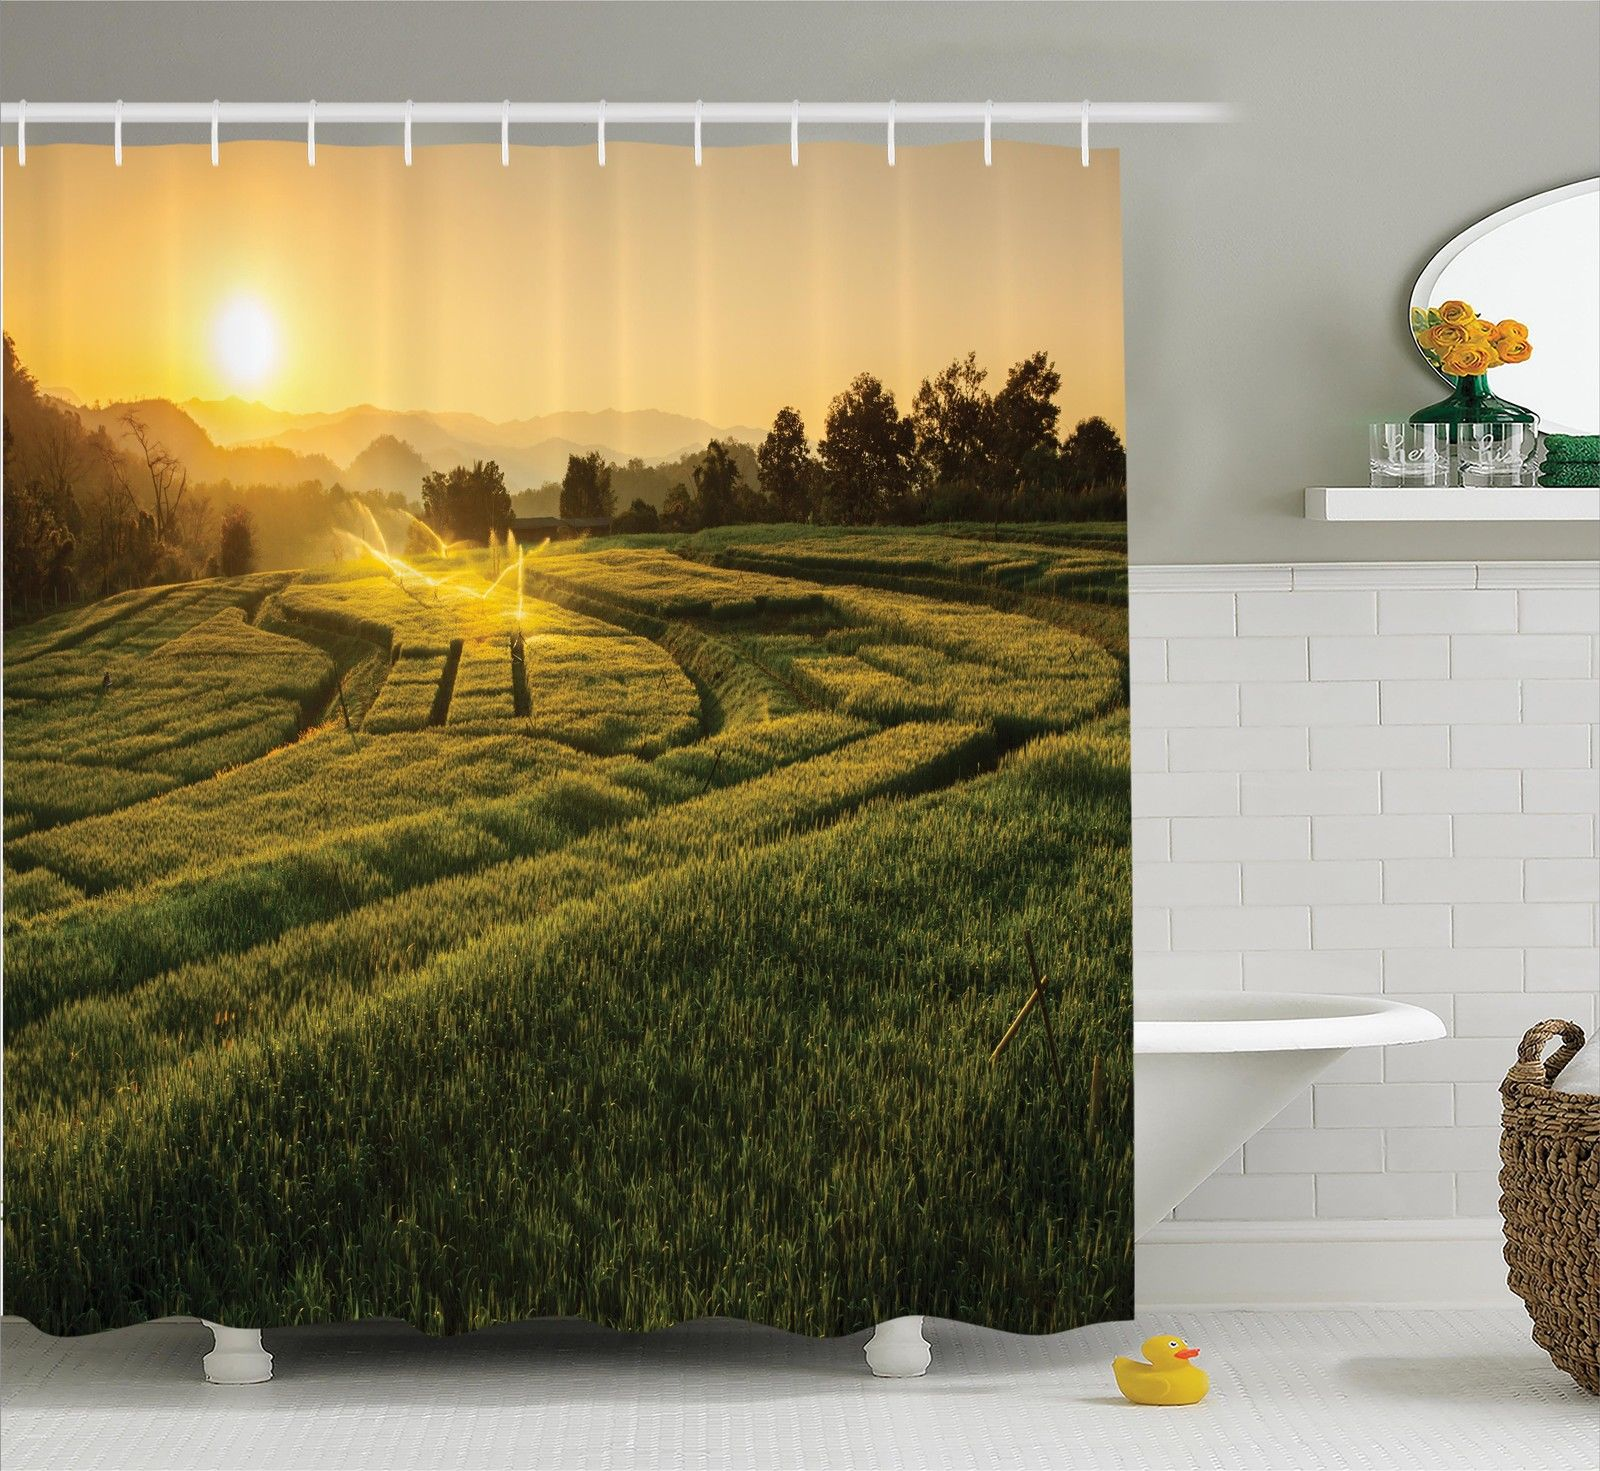 Farm House Decor Shower Curtain Set, Barley Field Sunset At Samoeng Chiang Mai Thailand Asian Nature Countryside Picture, Bathroom Accessories, 69W X 70L Inches, By Ambesonne